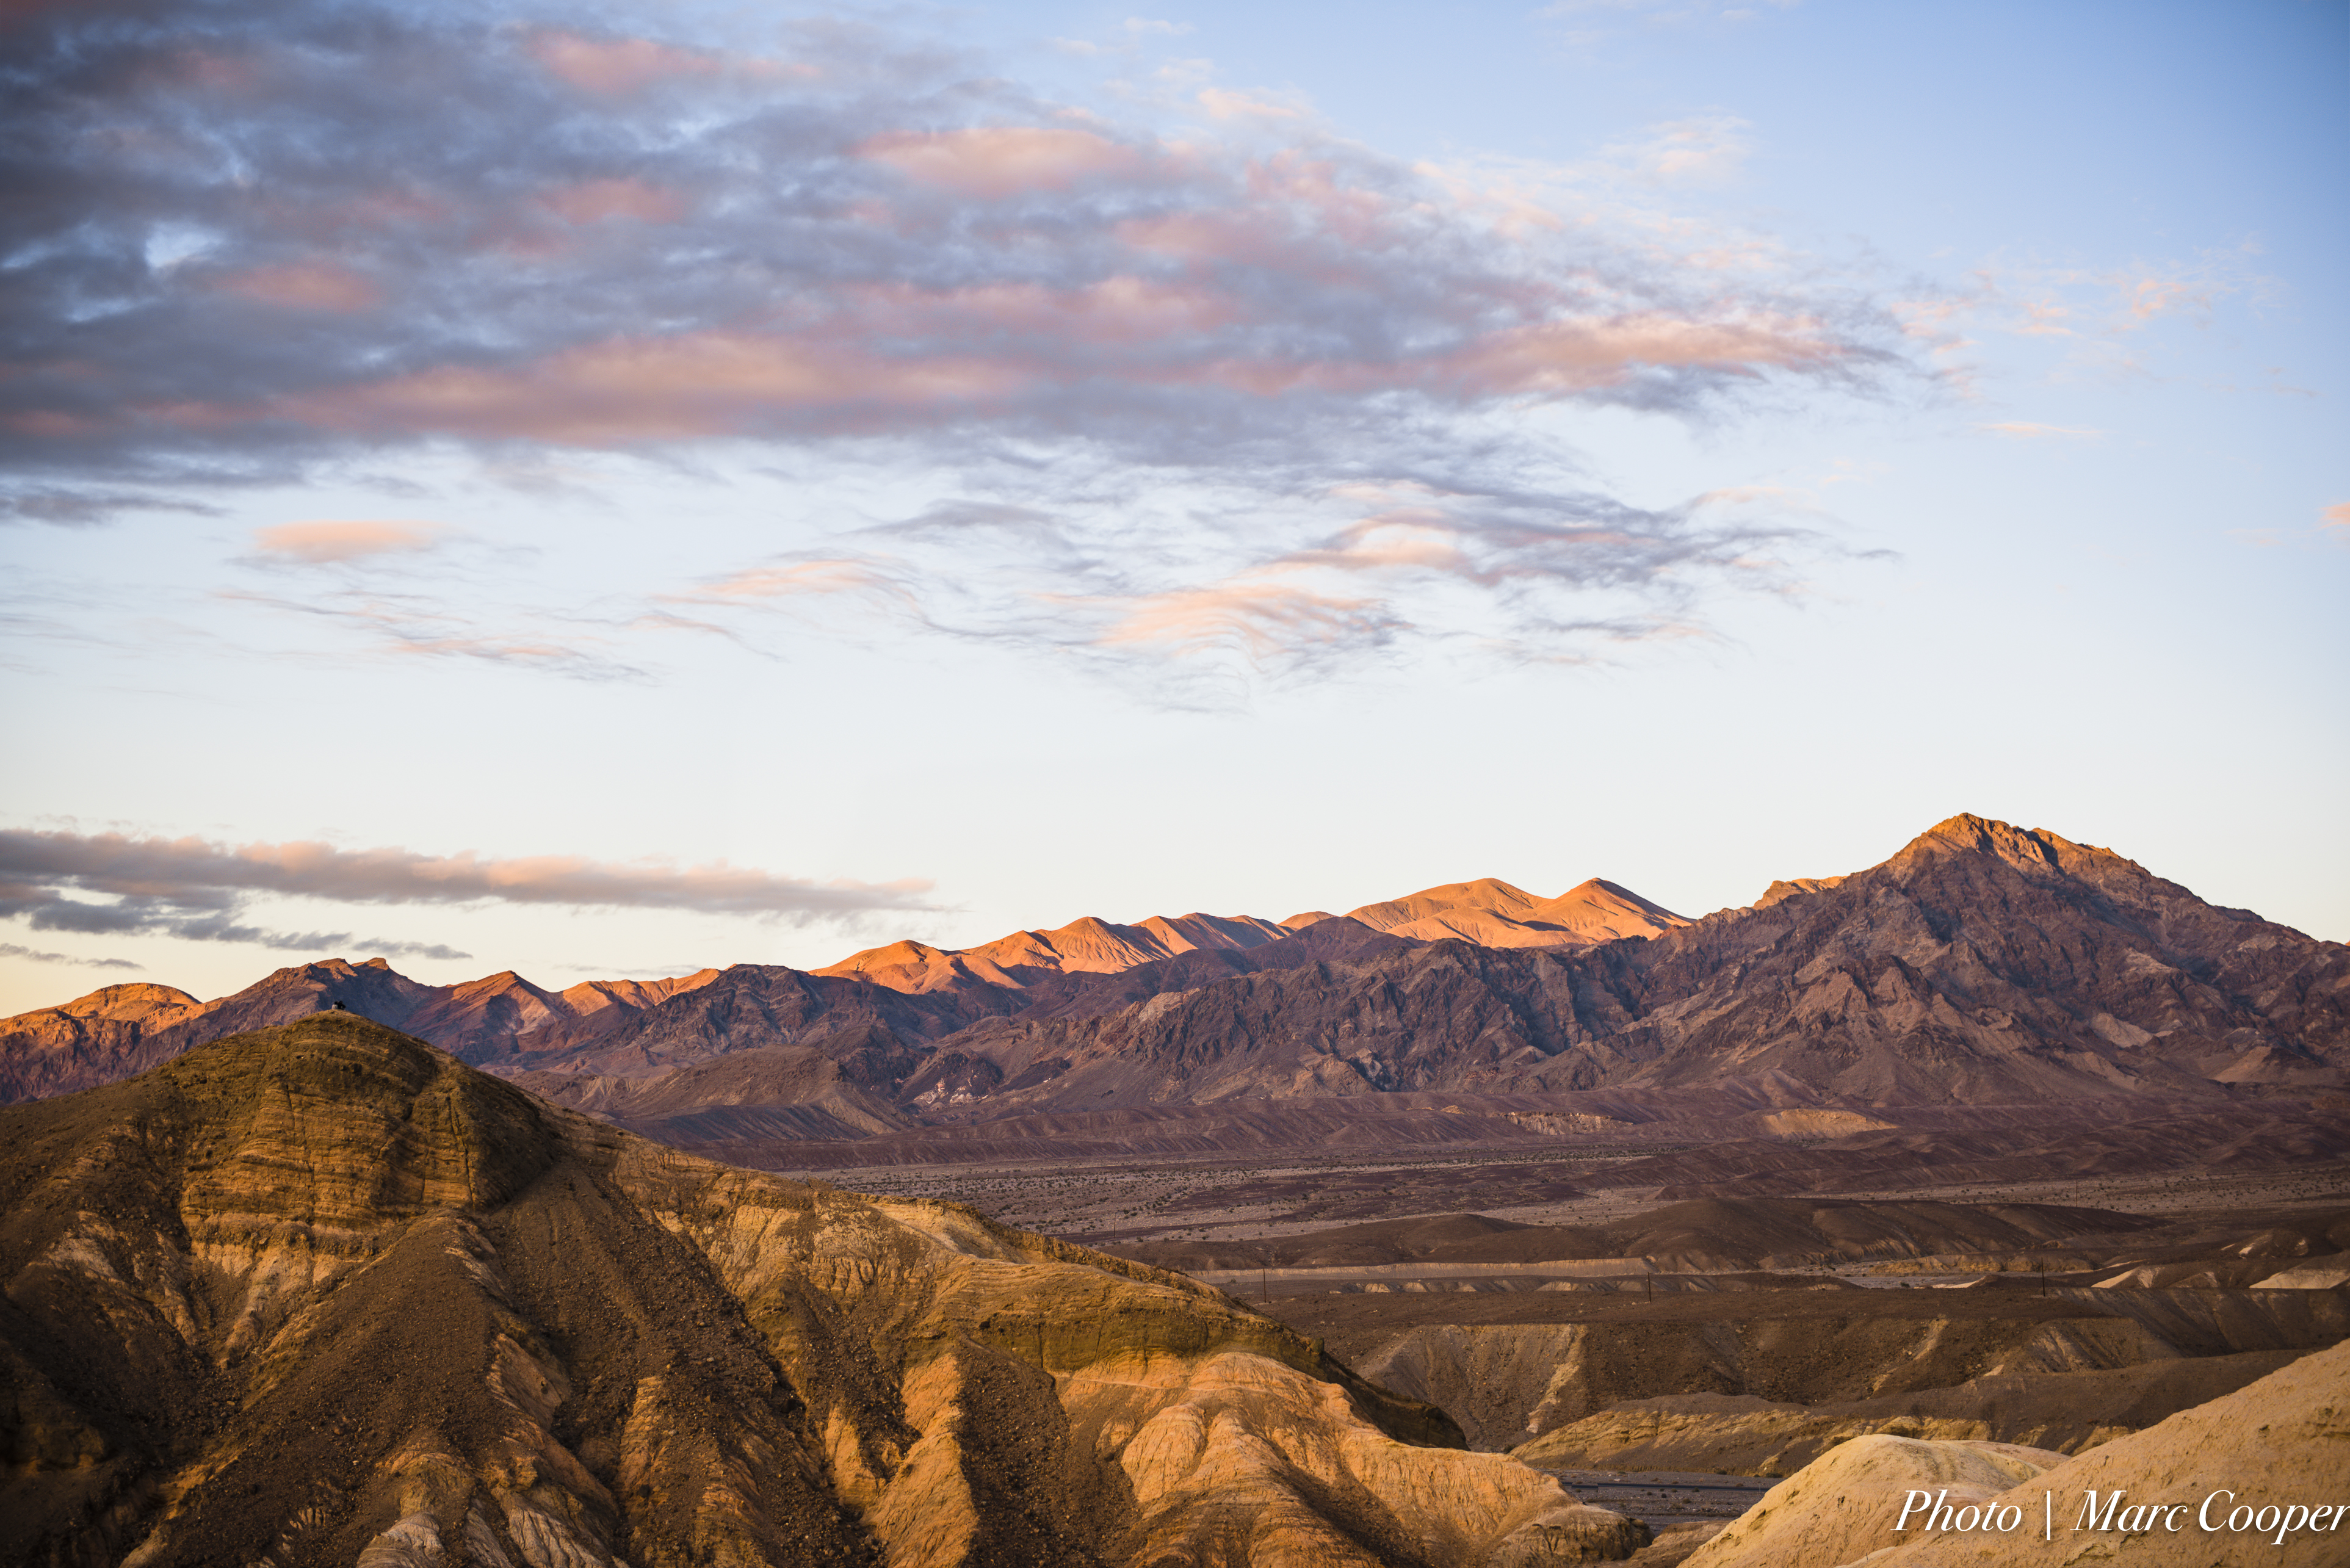 Where are the Cowboys?, Browns, Mountains, Sunset, Sky, HQ Photo